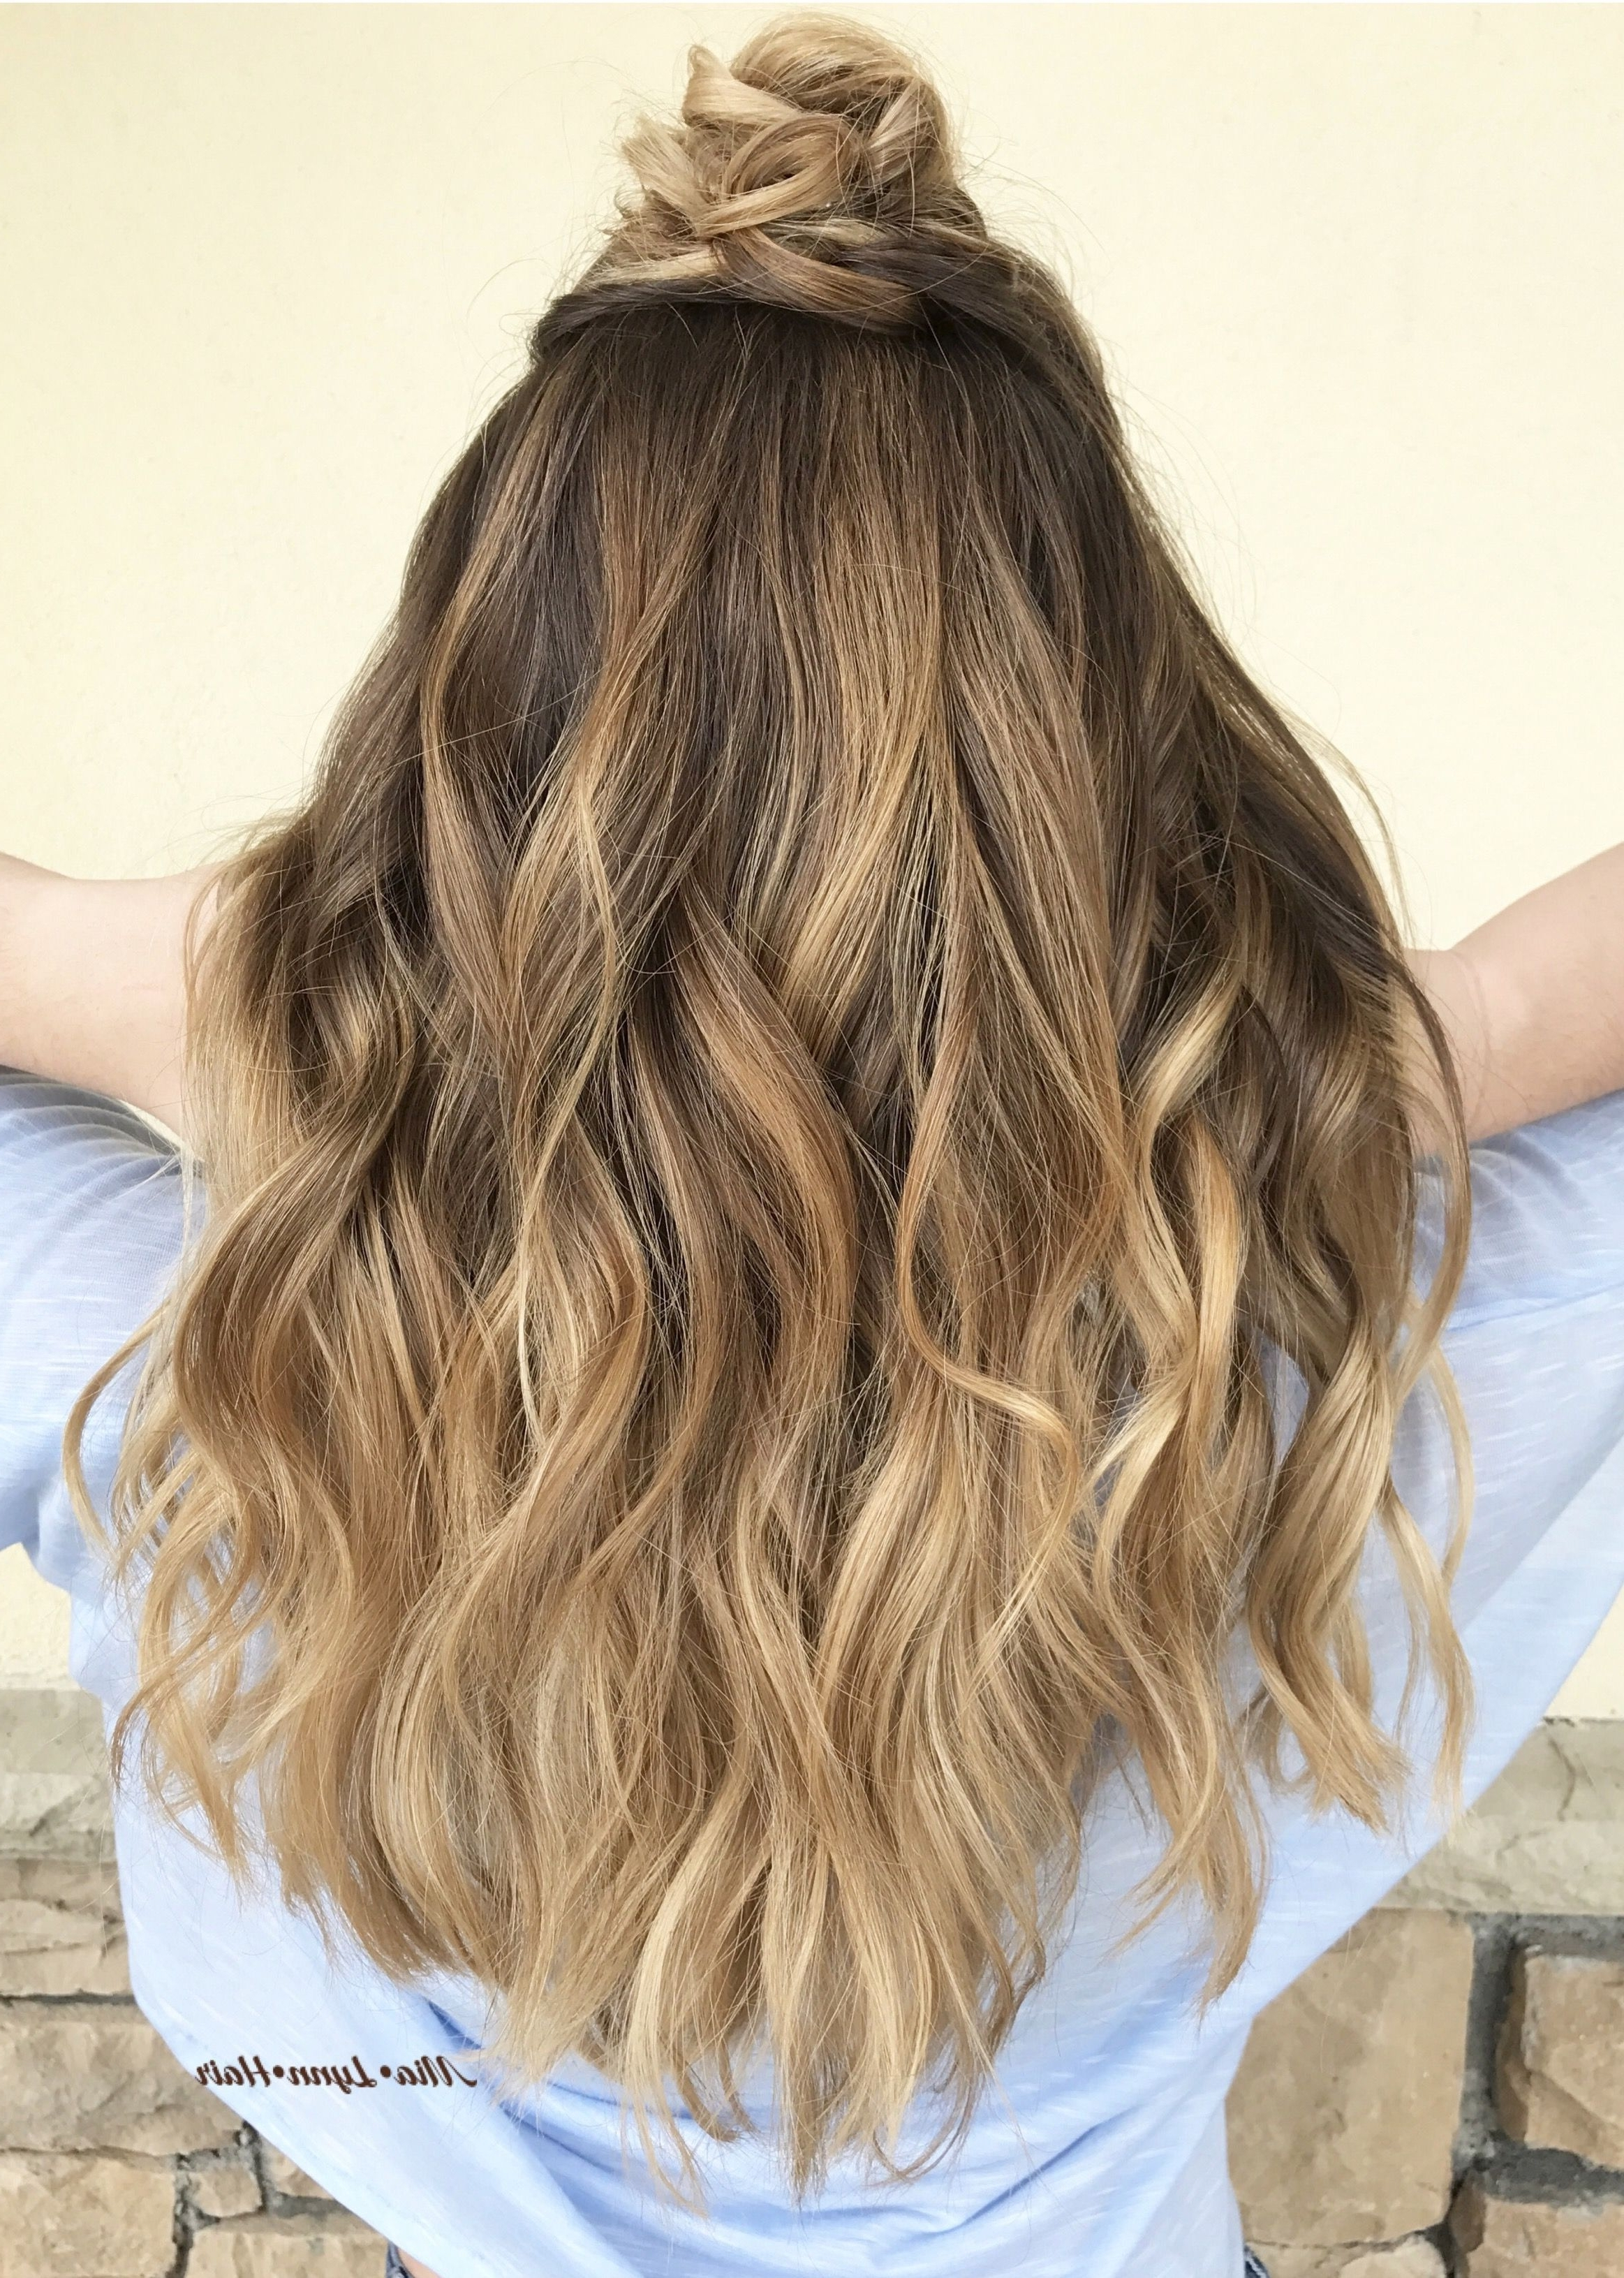 Well Known Beachy Waves Hairstyles With Blonde Highlights With Balayage, Balayage Highlights, Brown Hair, Blonde Hair, Sombre, Warm (View 20 of 20)